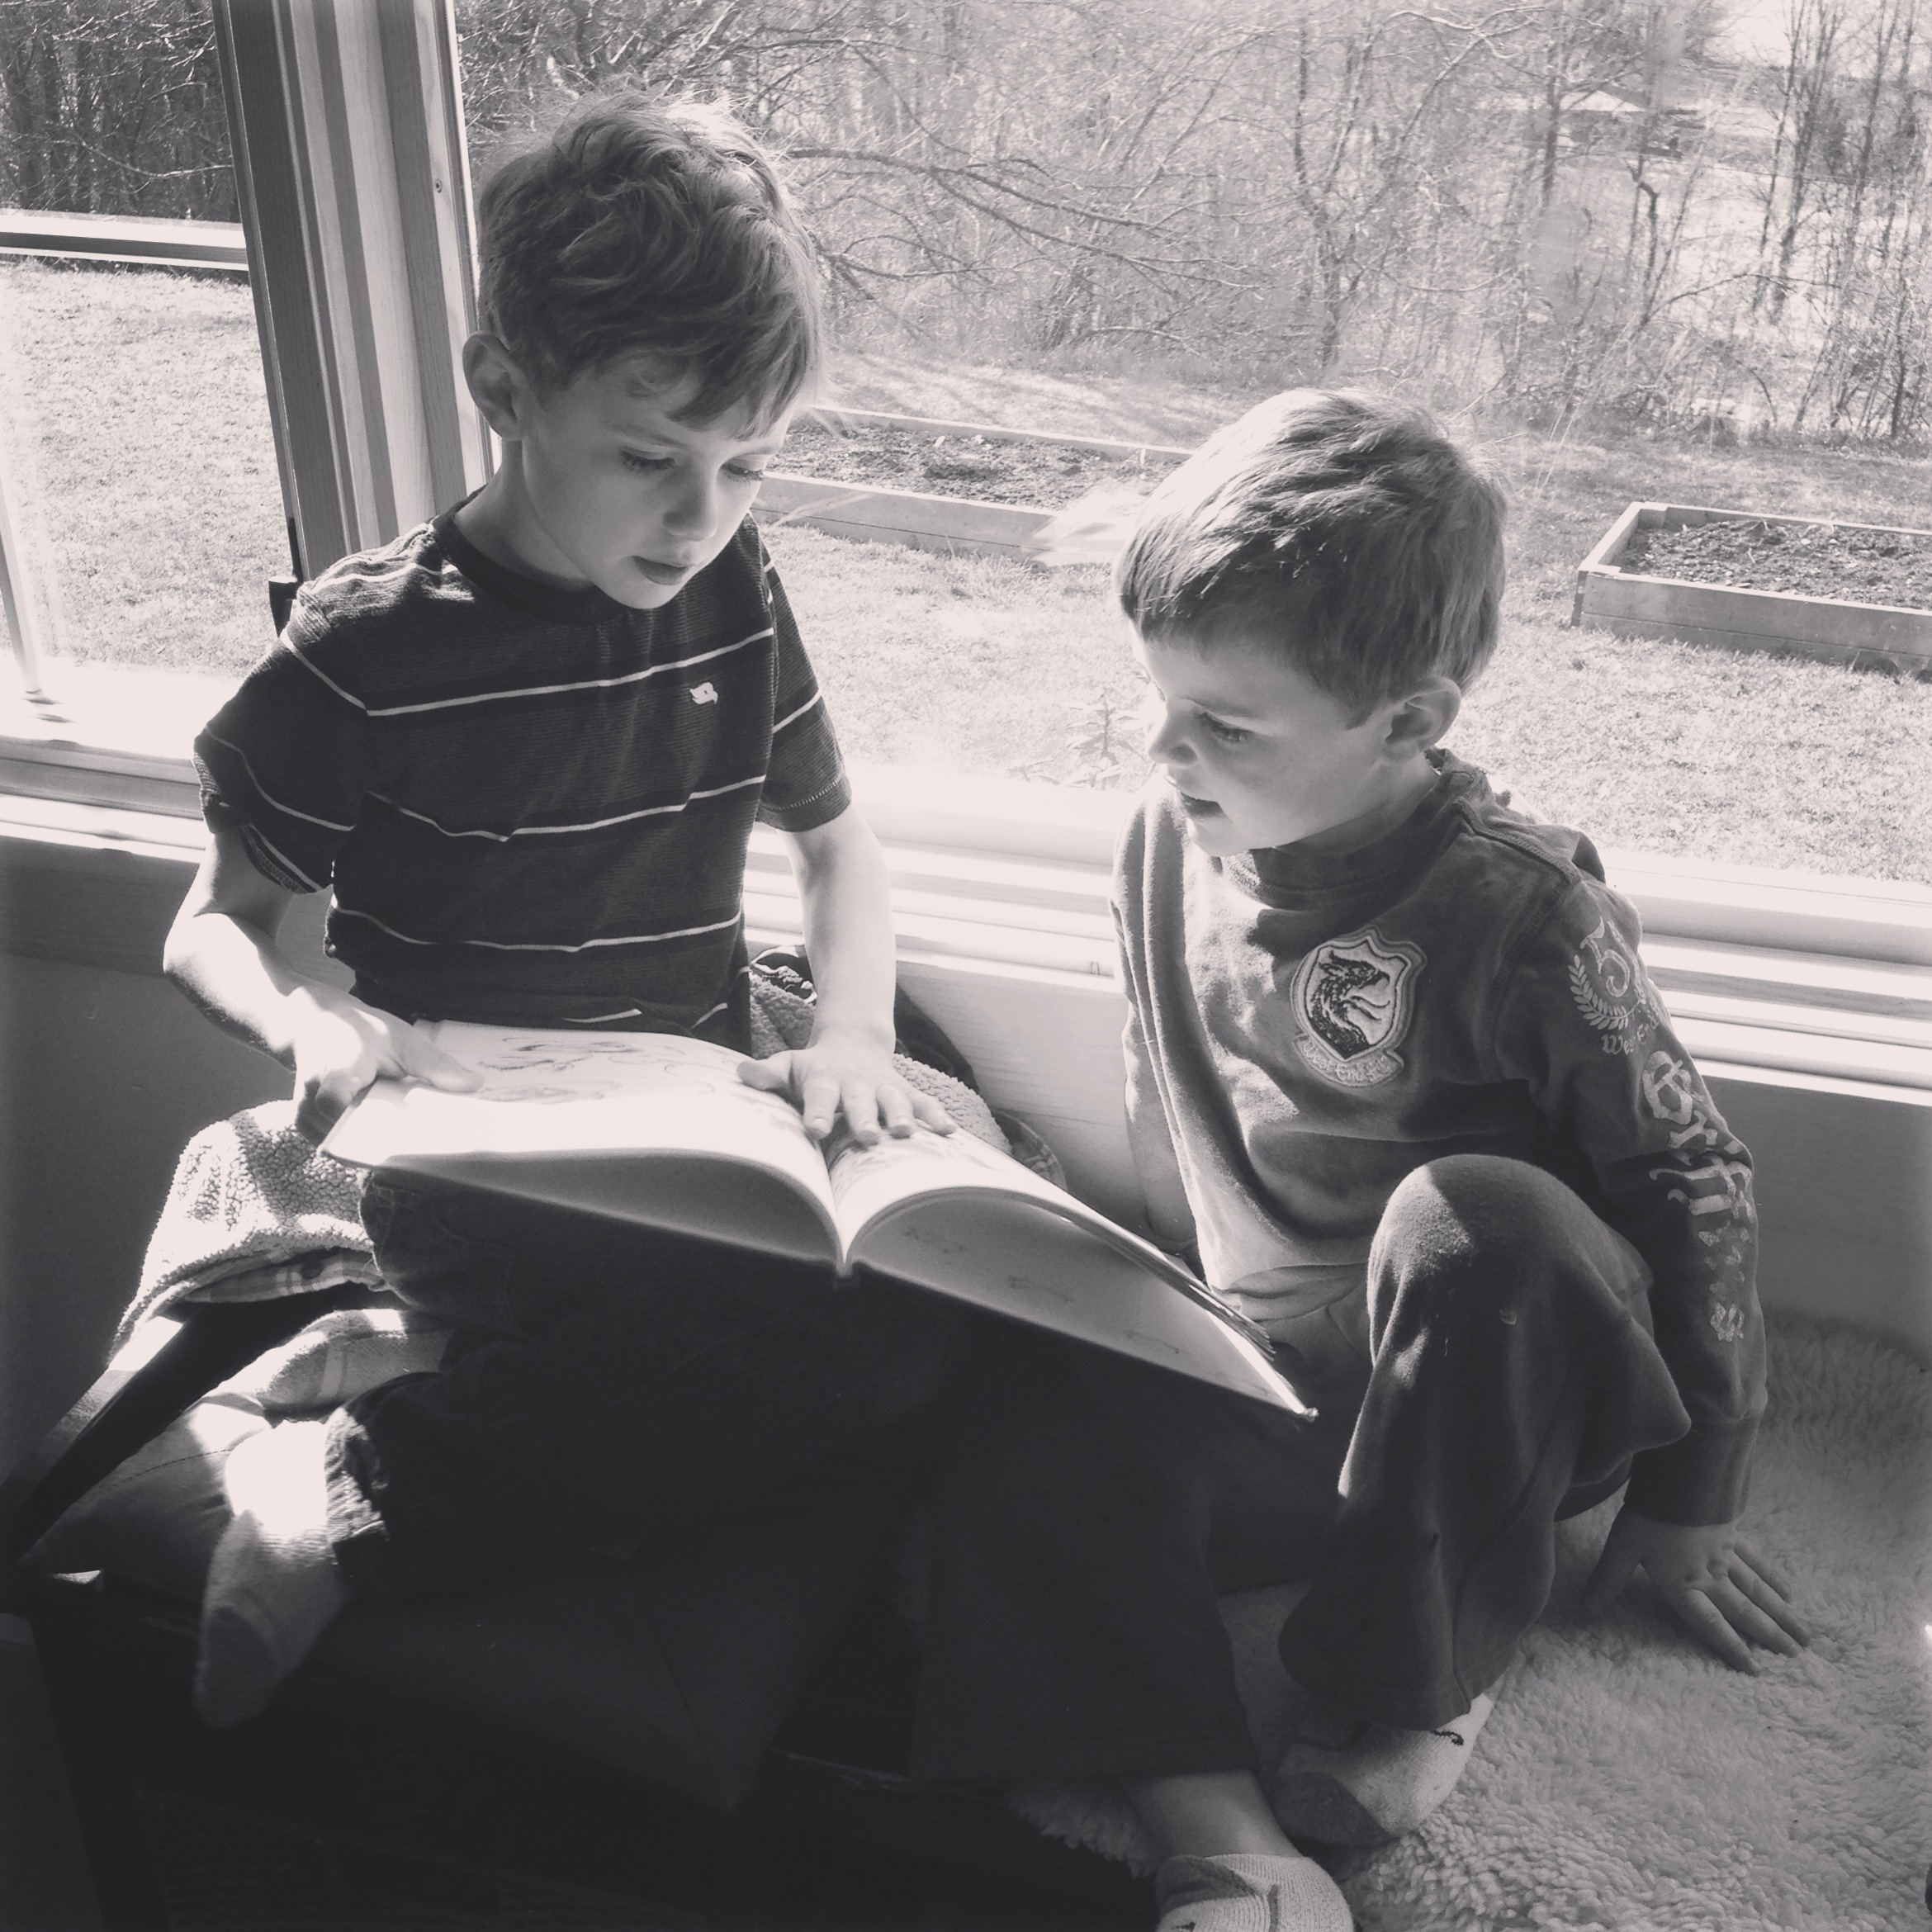 Brothers reading together - Christina Rosalie